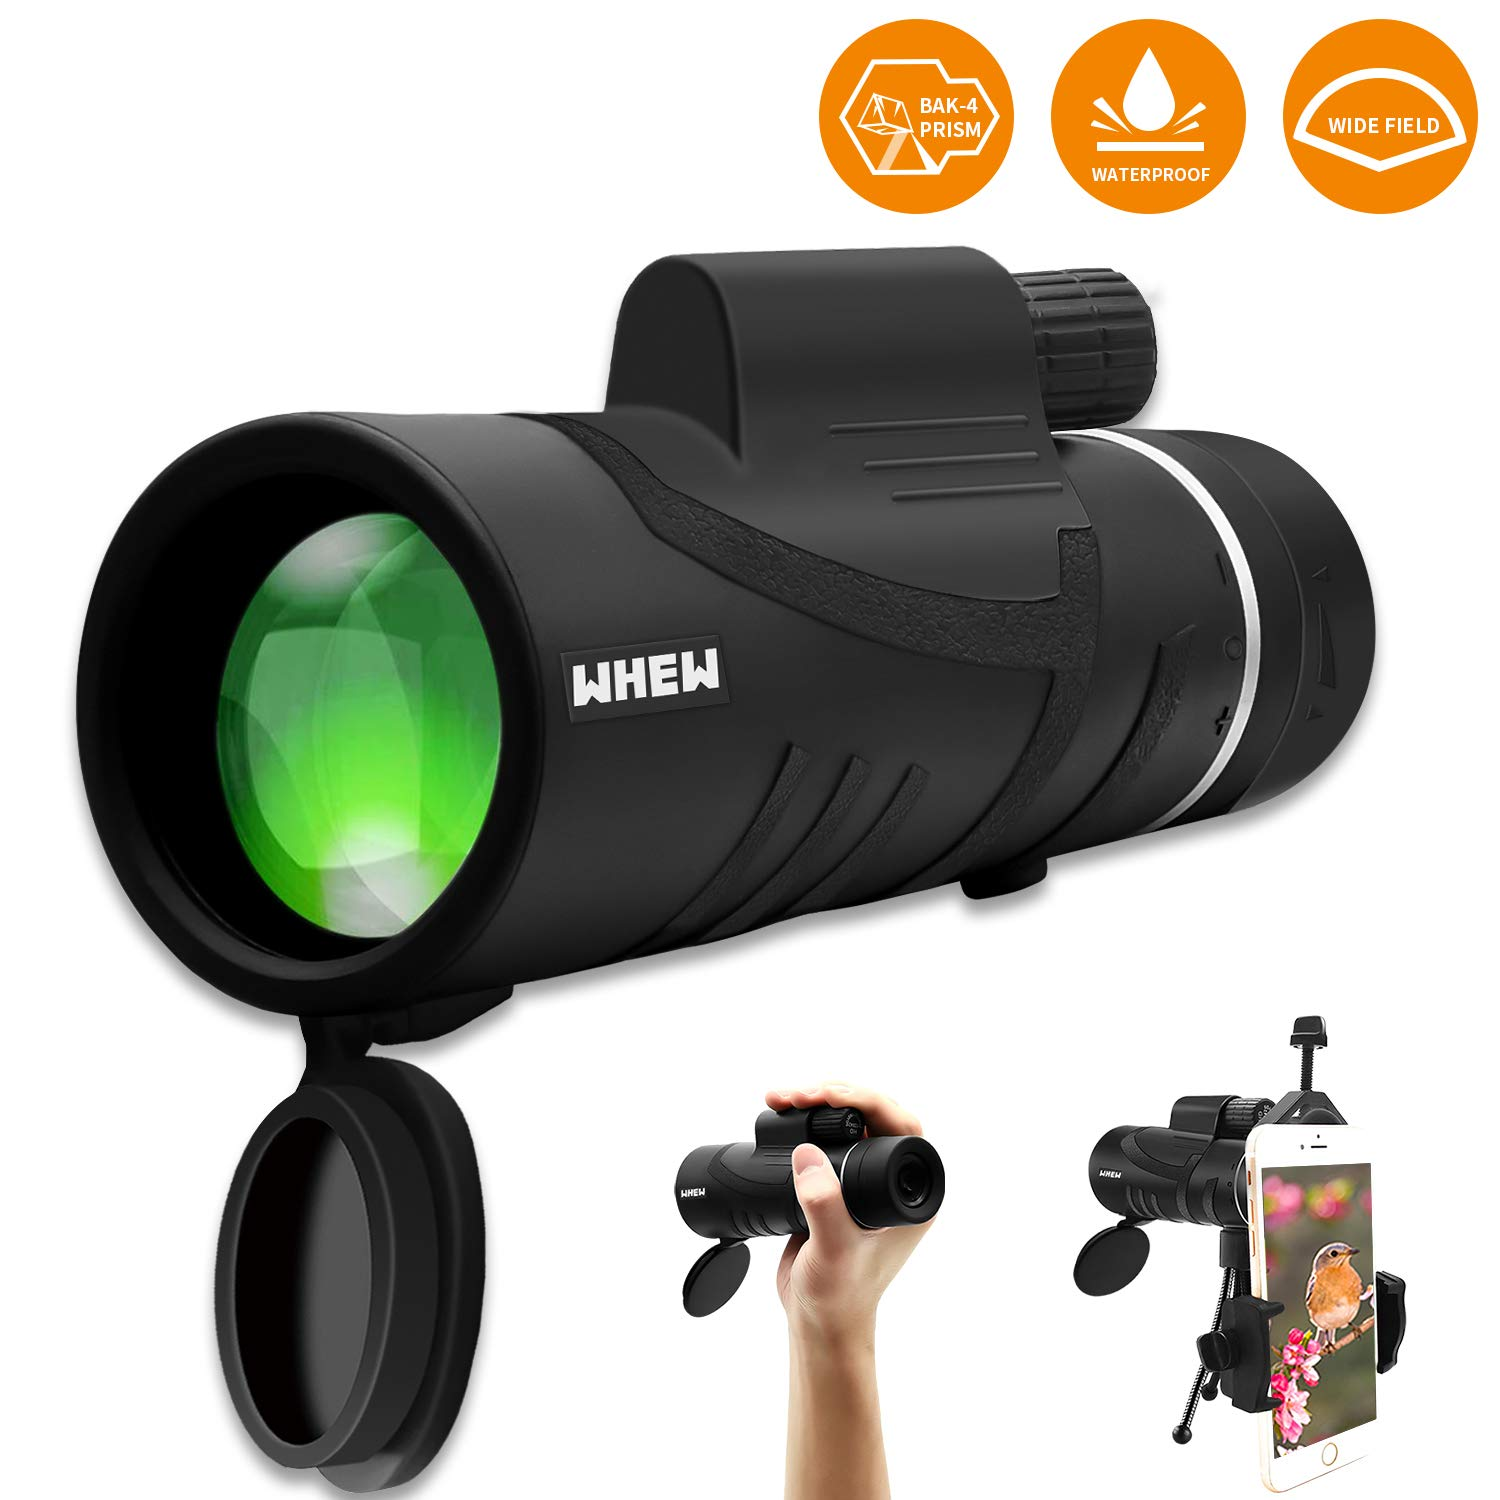 Whew Monocular Telescope,12x42 High Power Compact Scope with Smartphone Adapter and Tripod,Low Night Vision Waterproof HD BAK4 Prism FMC Monoculars for Hunting Bird Watching Camping Outdoor Sporting